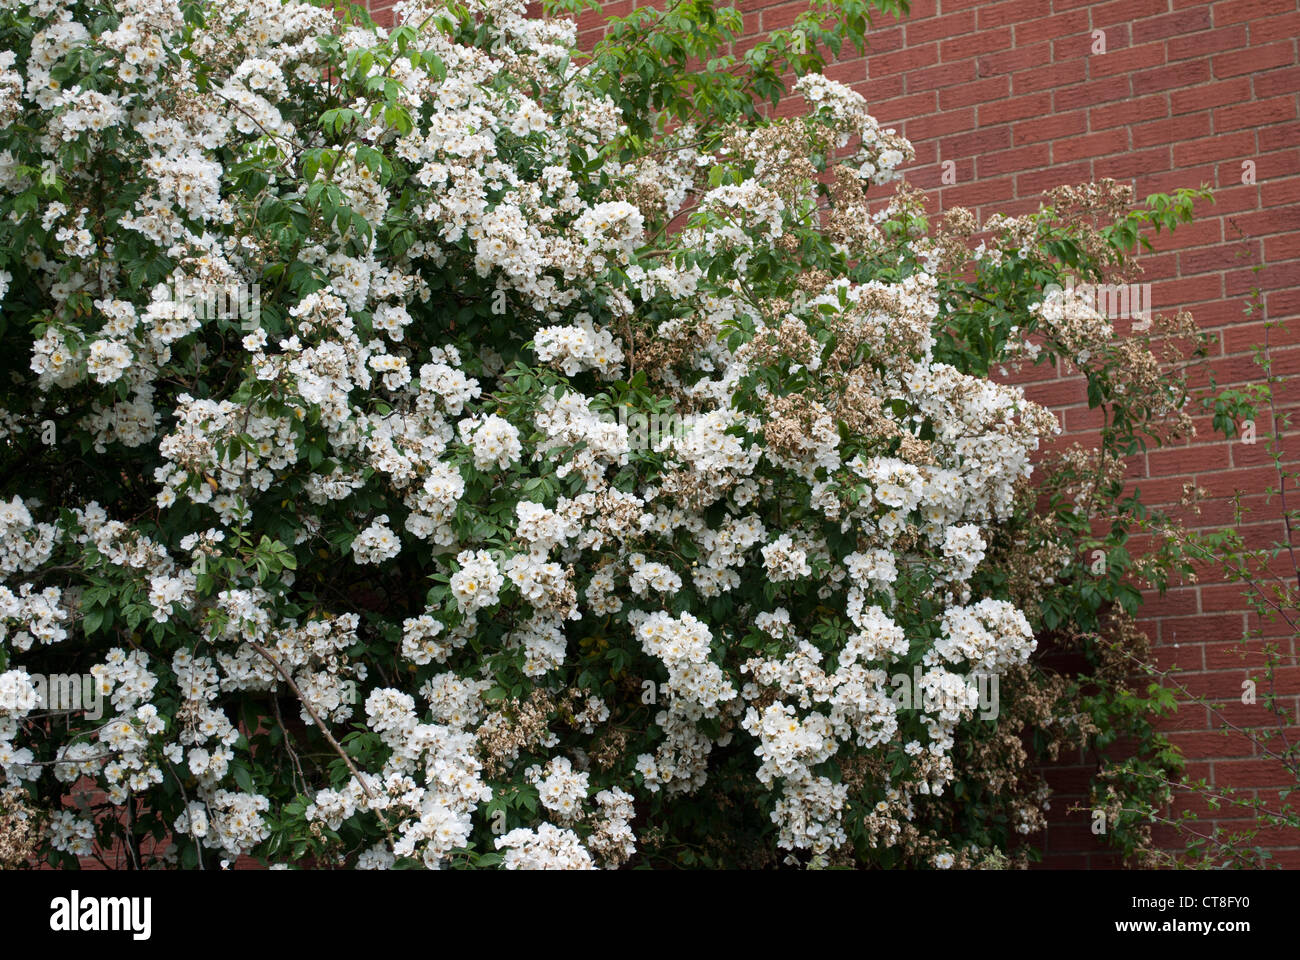 Climbing Rose Against Wall Stock Photos Climbing Rose Against Wall